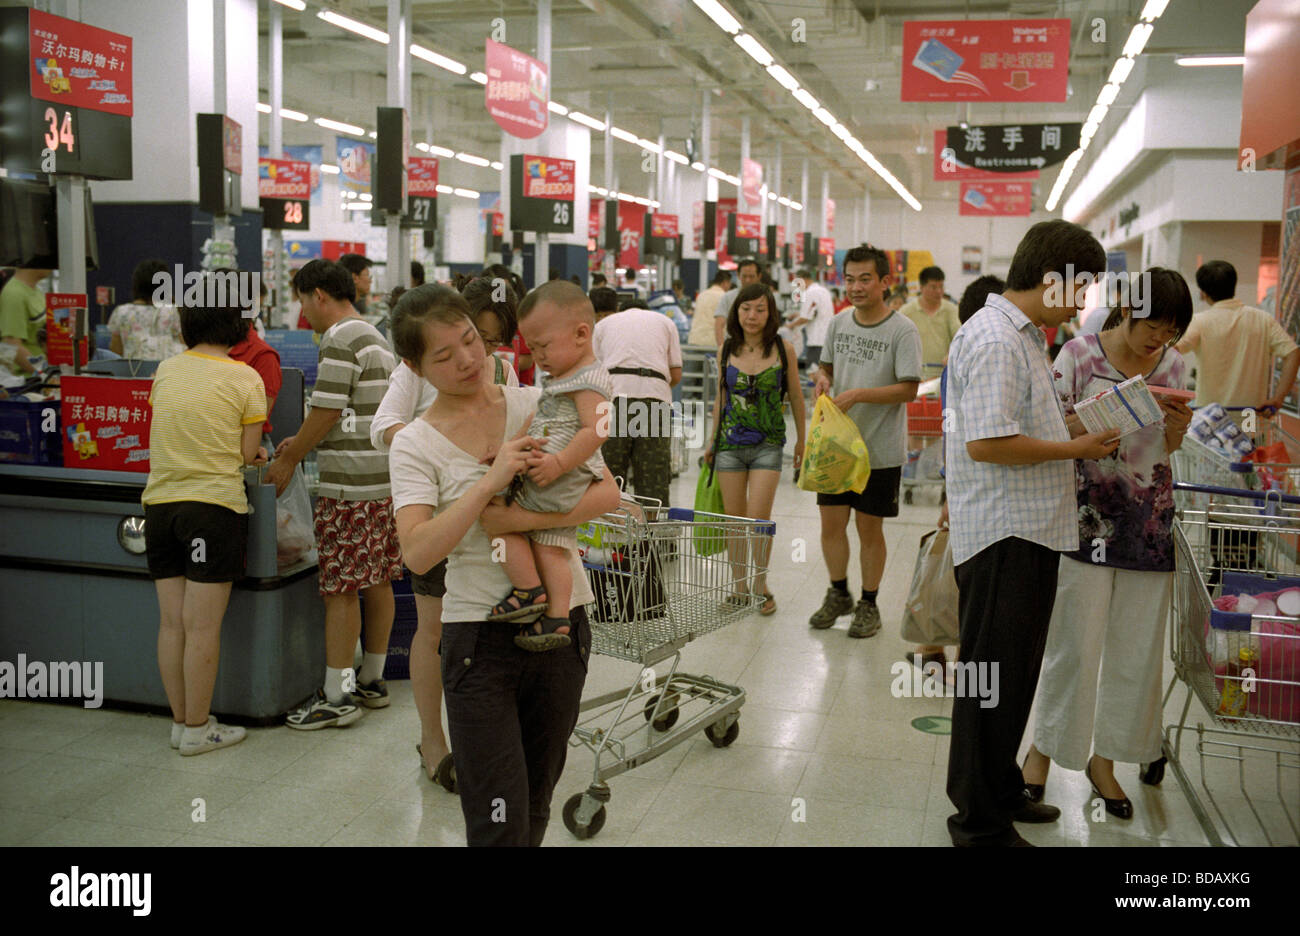 Chinese customers shopping at a Wal-Mart supermarket in ...